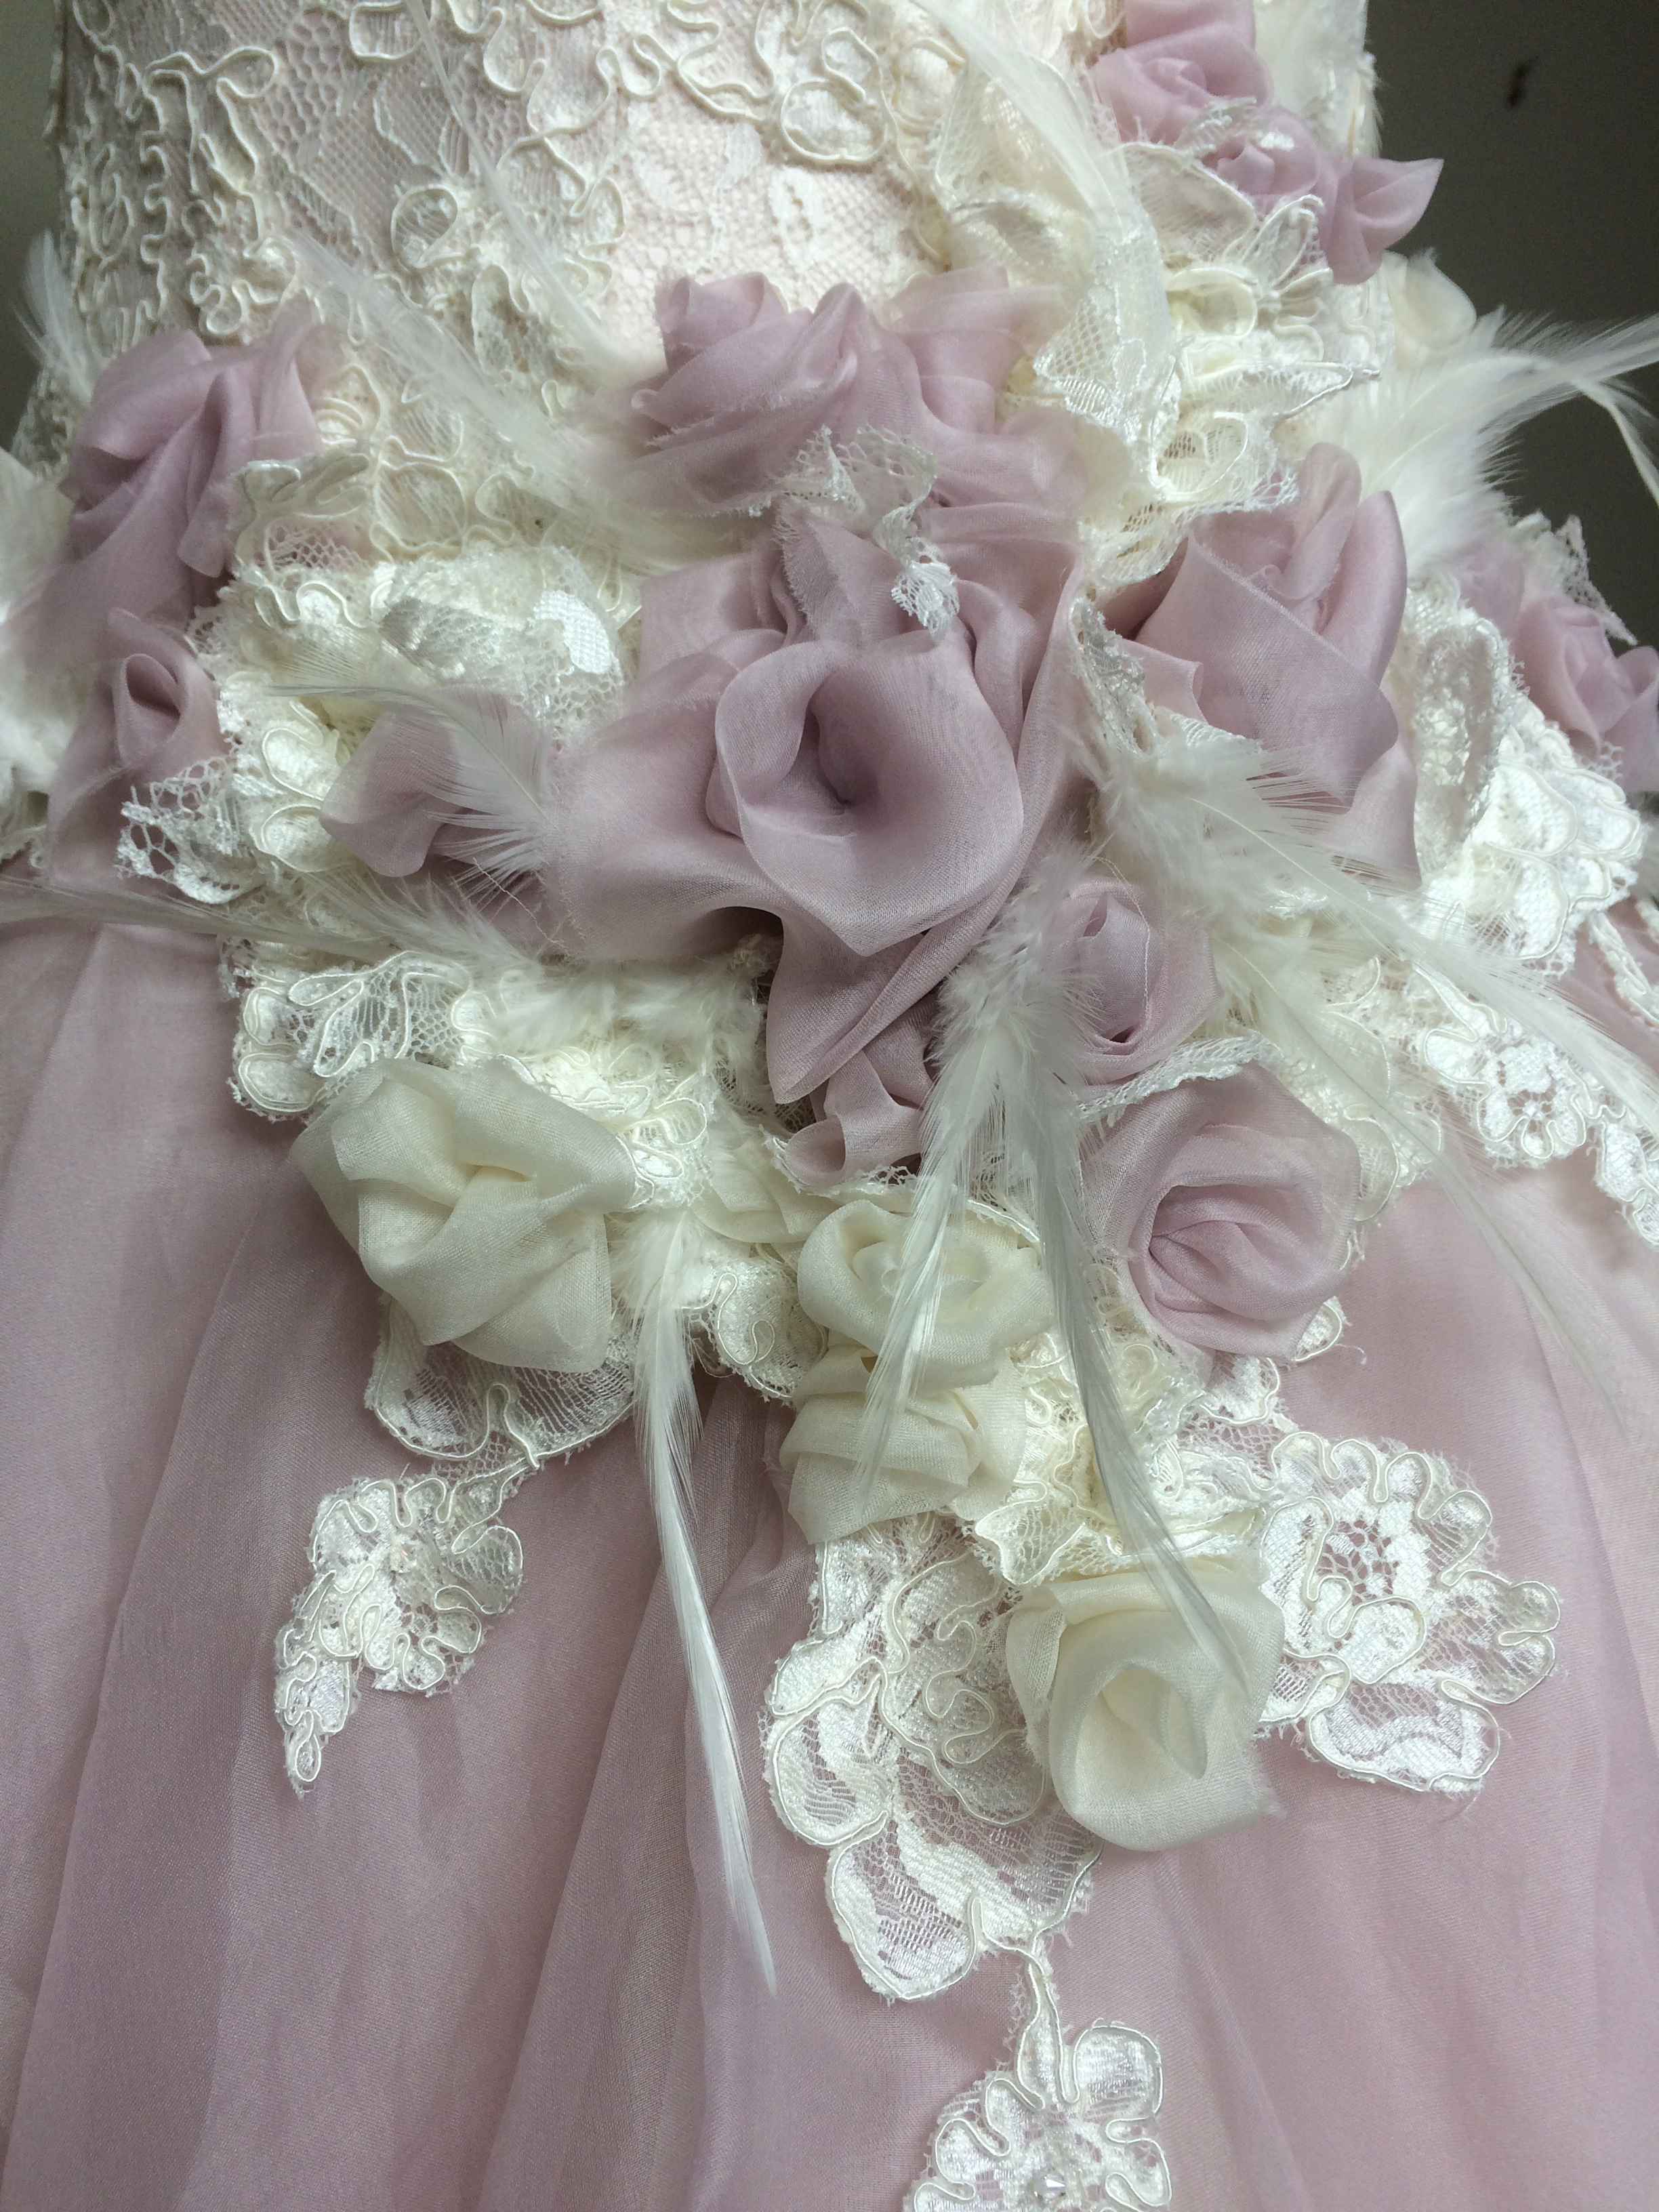 I'm very tactile and love the current bridal trends, allowing me to mix Dupion and organza silk, corded lace, hackle feathers, Swarovski bicone AB crystals and ivory/pink ombre, to create this wonderful merriment of a garden for my garden bride.